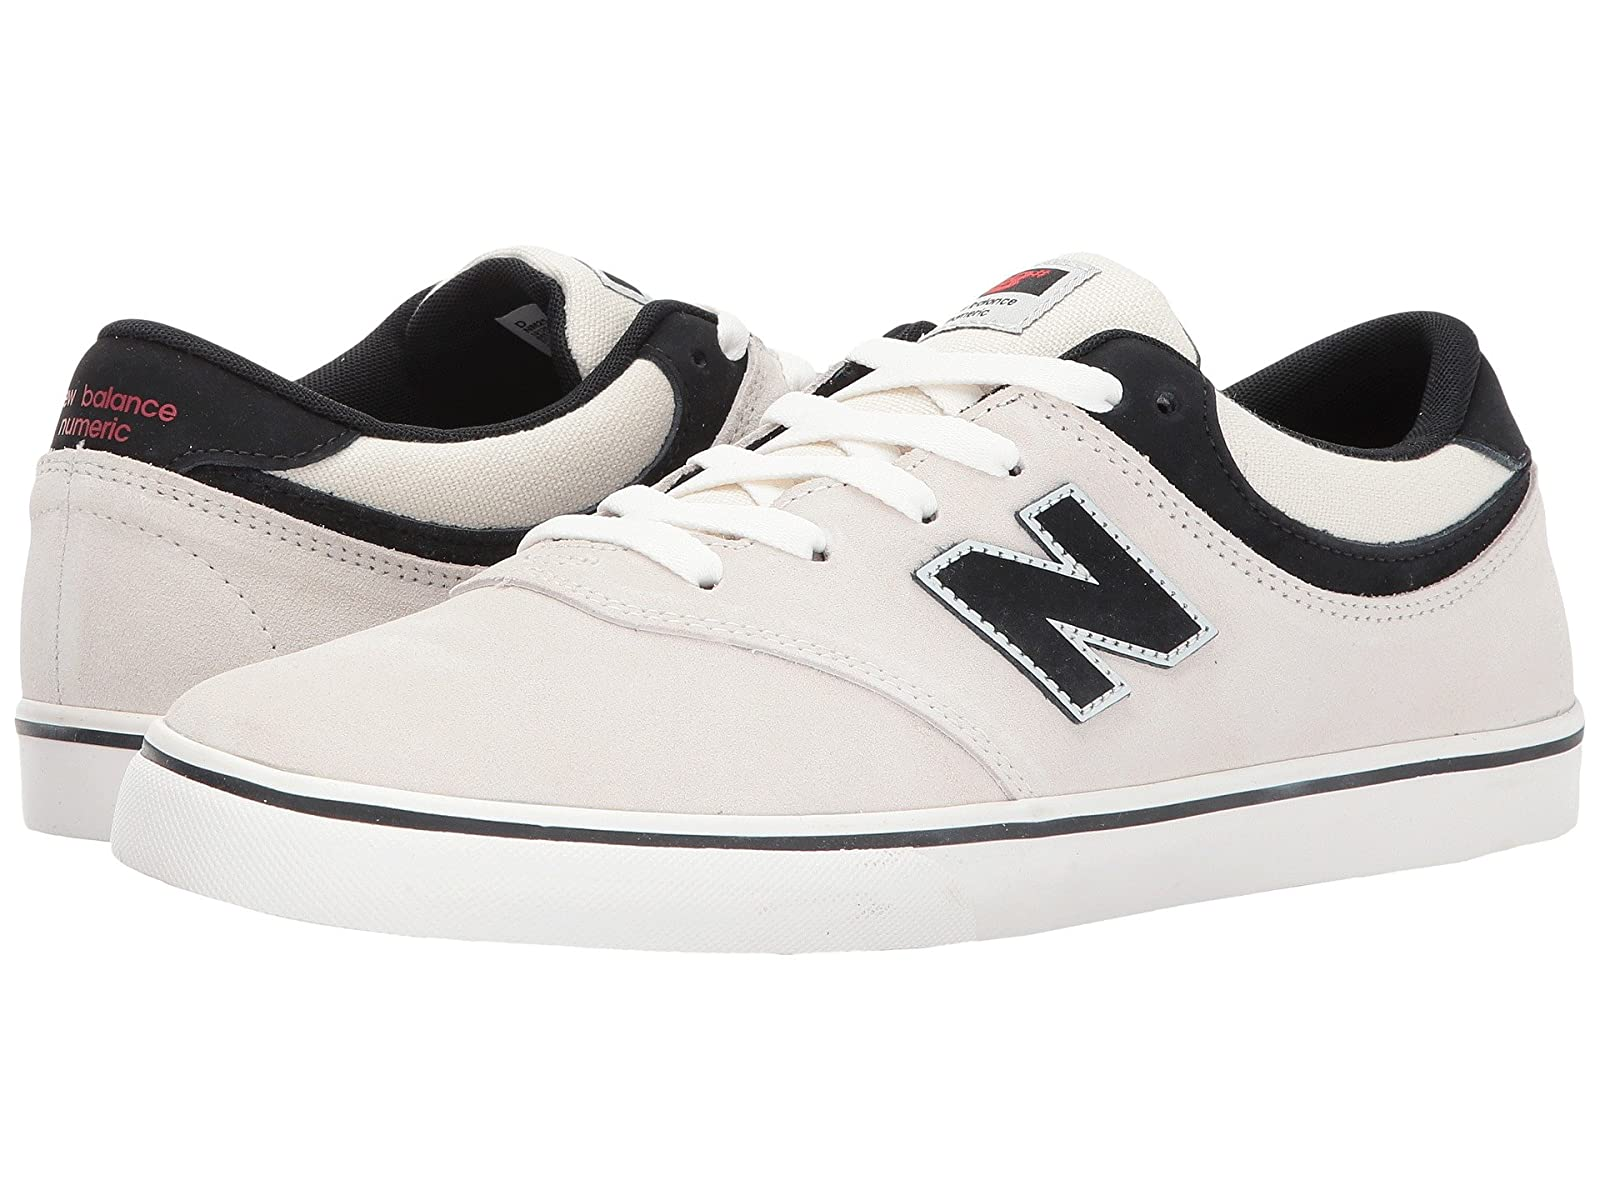 New Balance Numeric NM254Cheap and distinctive eye-catching shoes